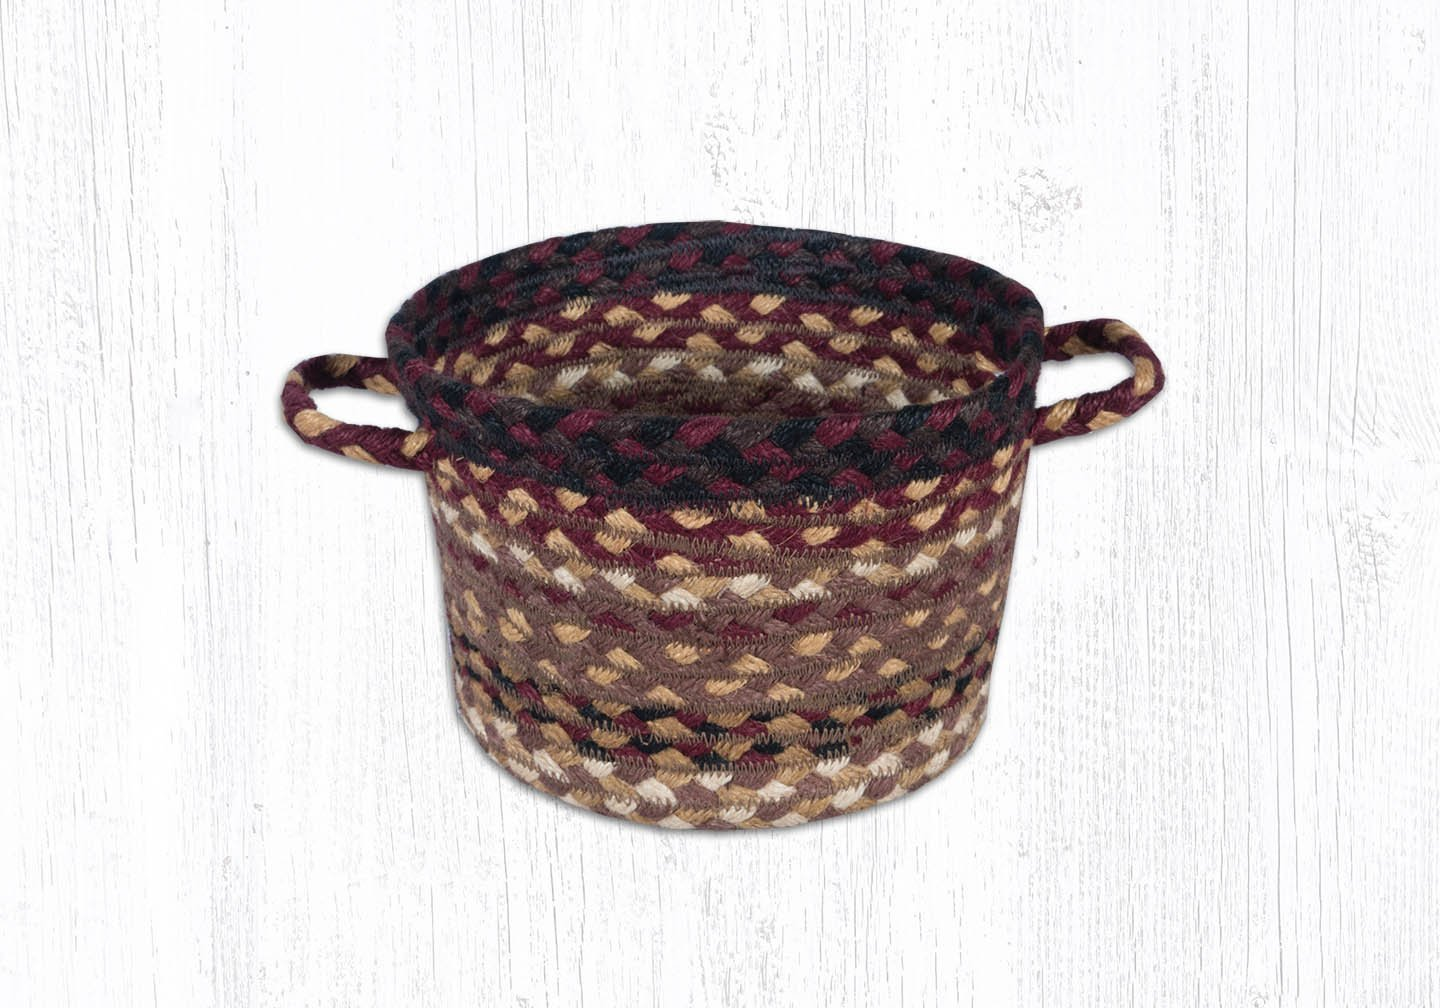 Black Cherry/Chocolate/Cream Utility Basket 8 in. by 6 in.